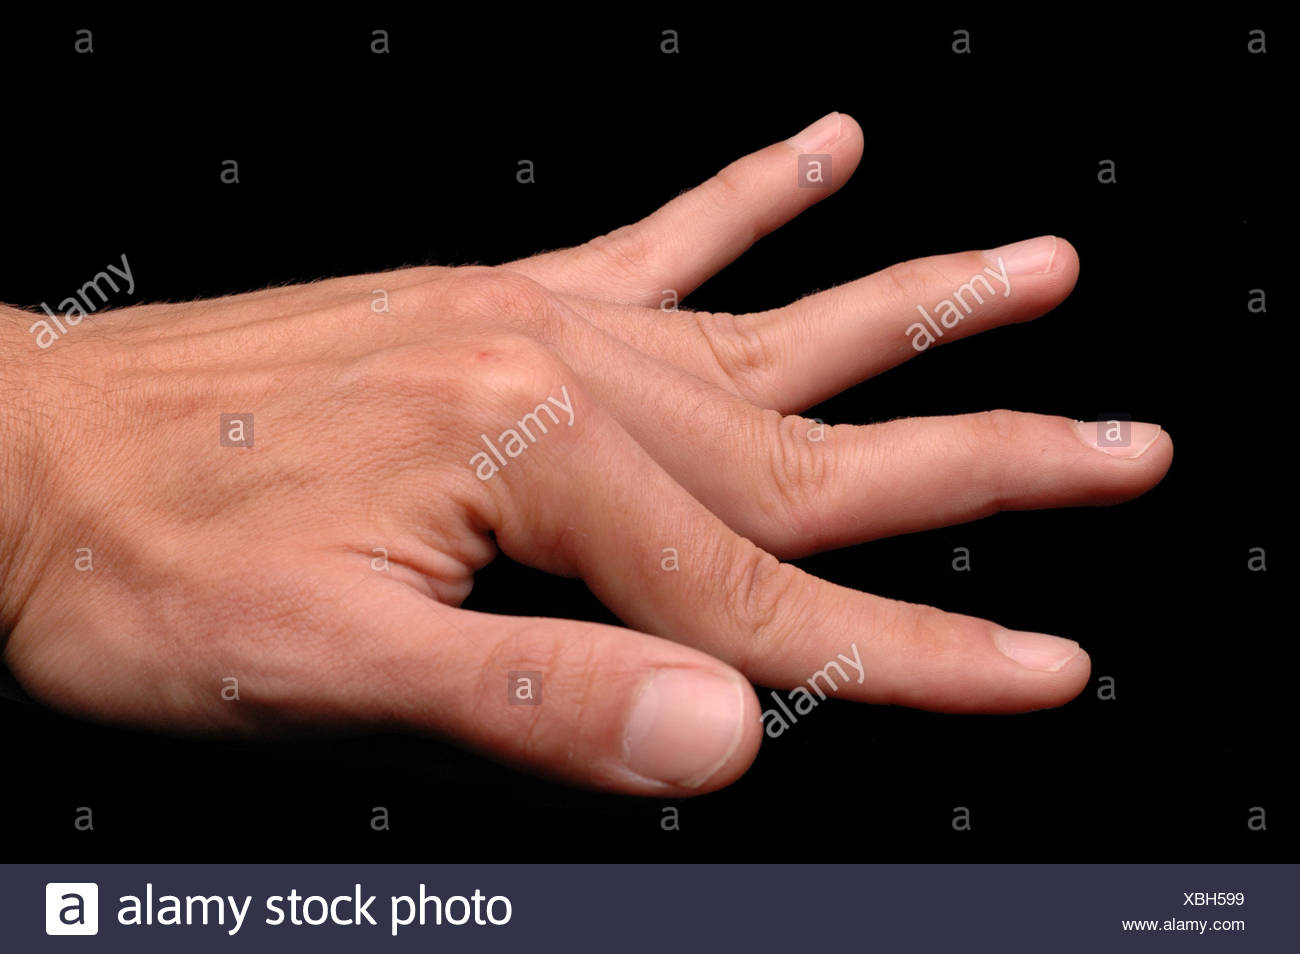 Ehlers Danlos Syndrom Stock Photos & Ehlers Danlos Syndrom Stock ...